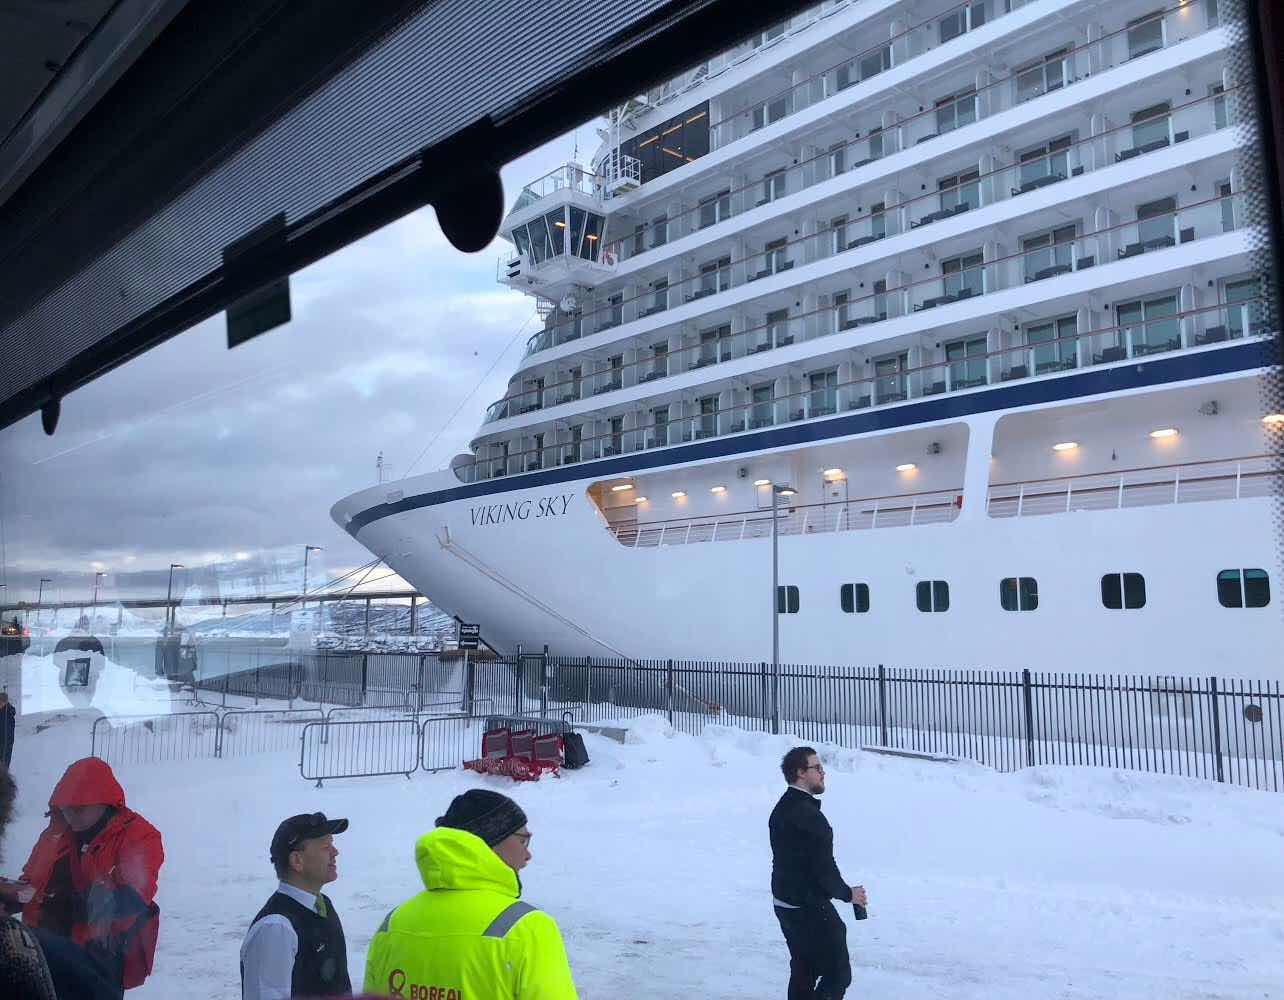 Returning to the Viking Sky after a shore excursion (Source: Palmia Observatory)